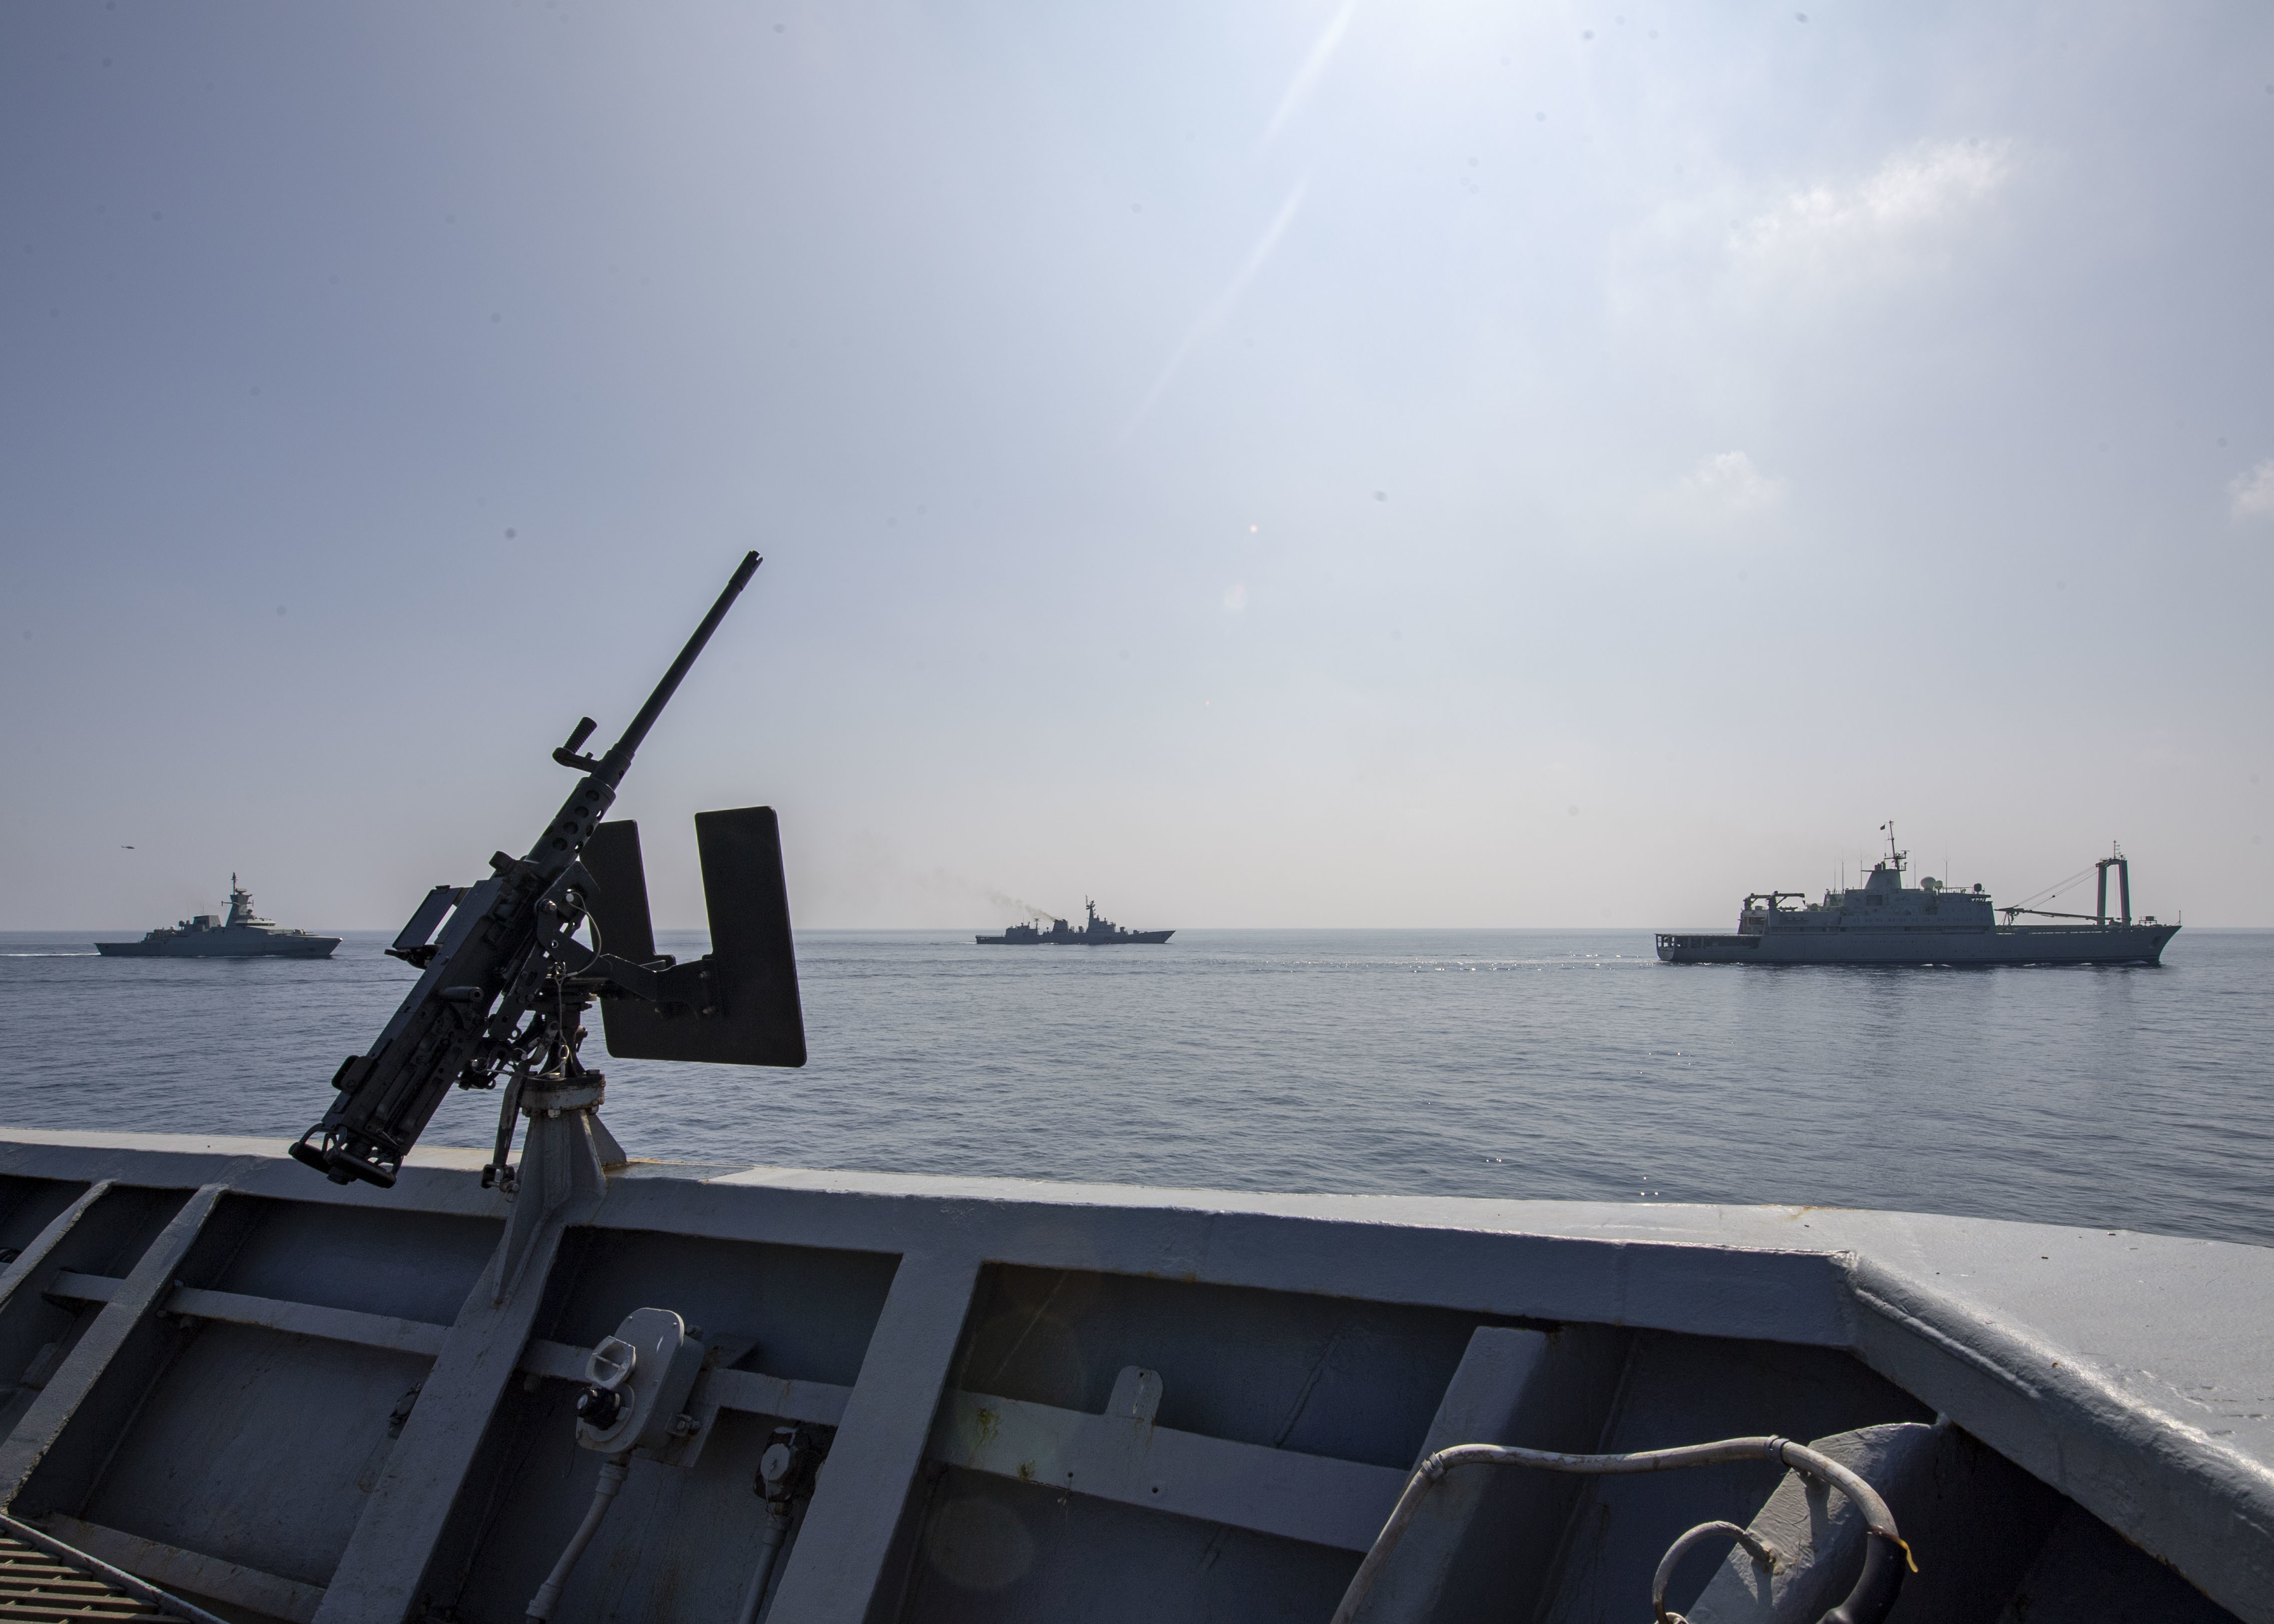 Ships from the Oman Navy travel alongside the USS Normandy during a multi-nation exercise in the Gulf of Oman on Nov. 6, 2019. (Mass Communication Specialist 2nd Class Michael H. Lehman/Navy)